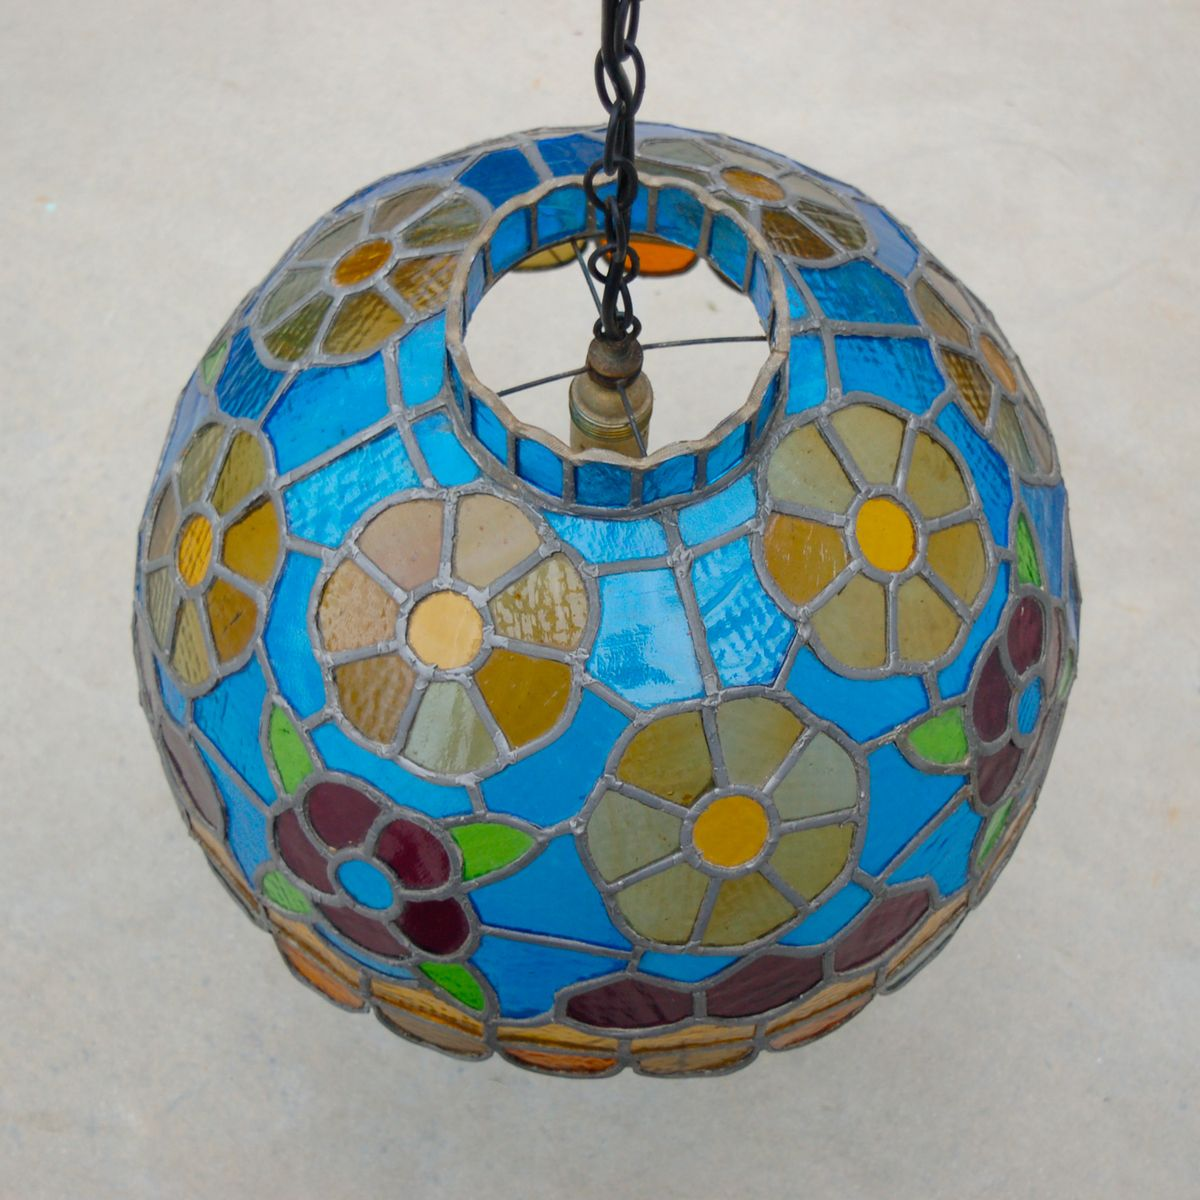 Handcrafted stained glass pendant lamp 1970s for sale at pamono handcrafted stained glass pendant lamp 1970s 3 previous aloadofball Gallery